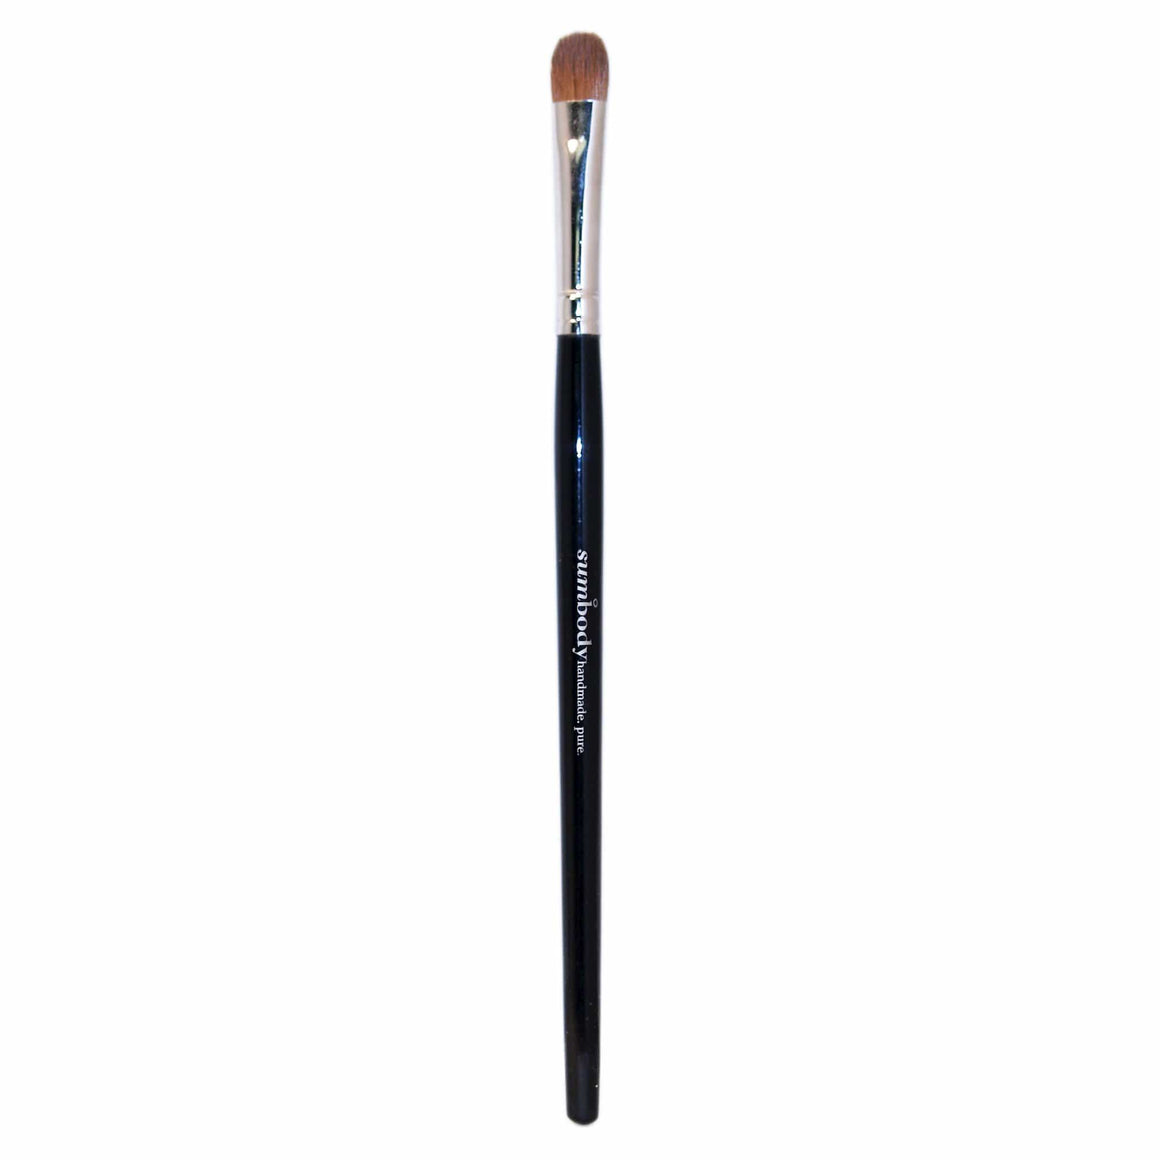 Sable Eye Makeup Brush